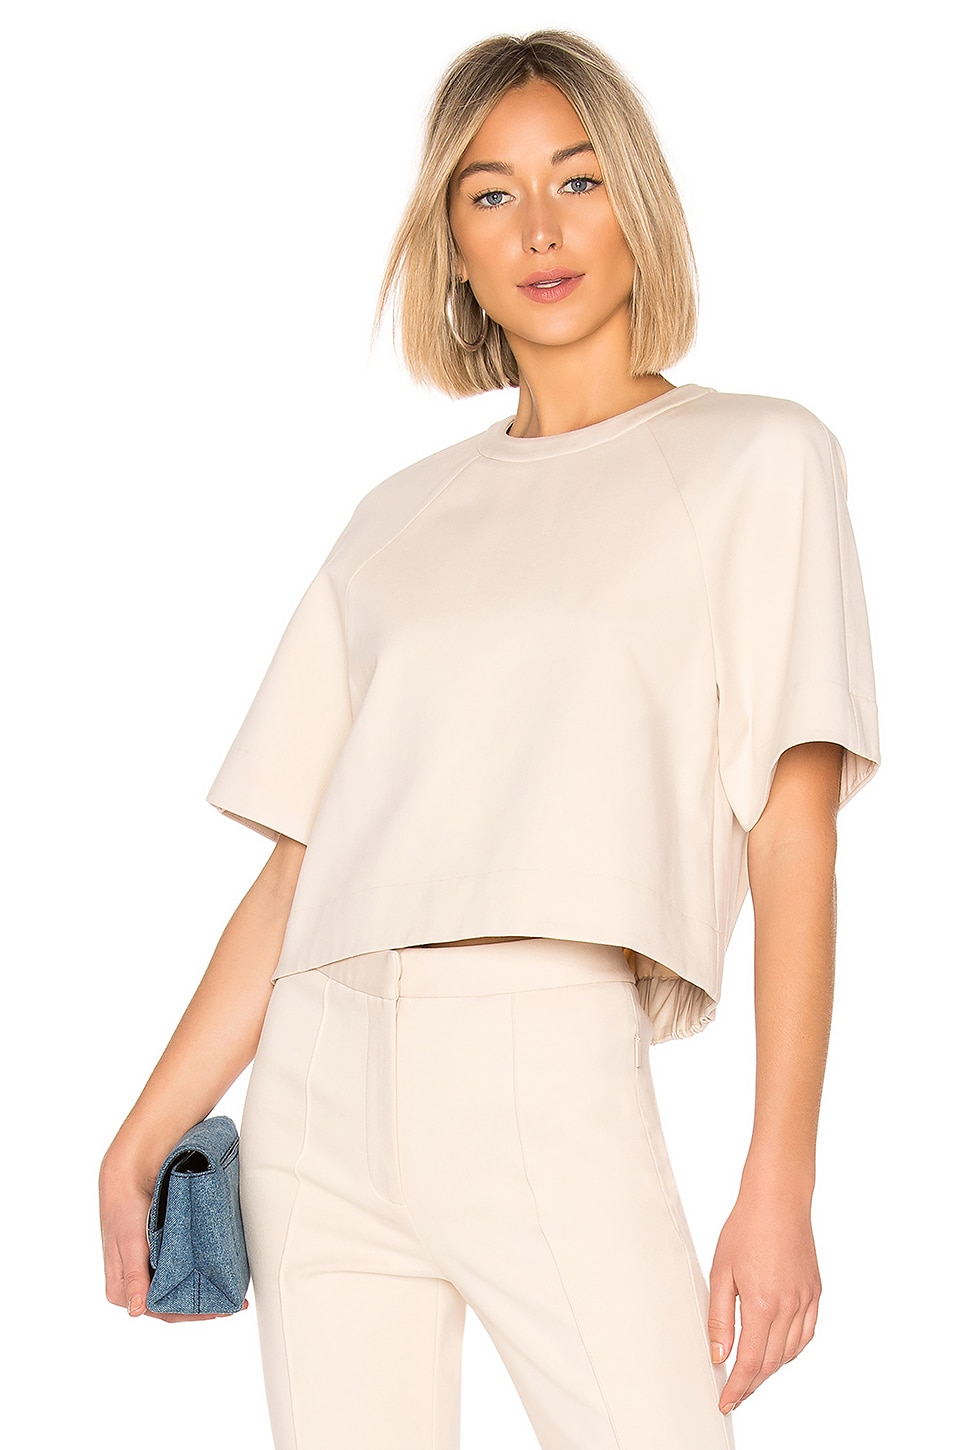 Tibi Raglan Short Sleeve Top in Light Stone